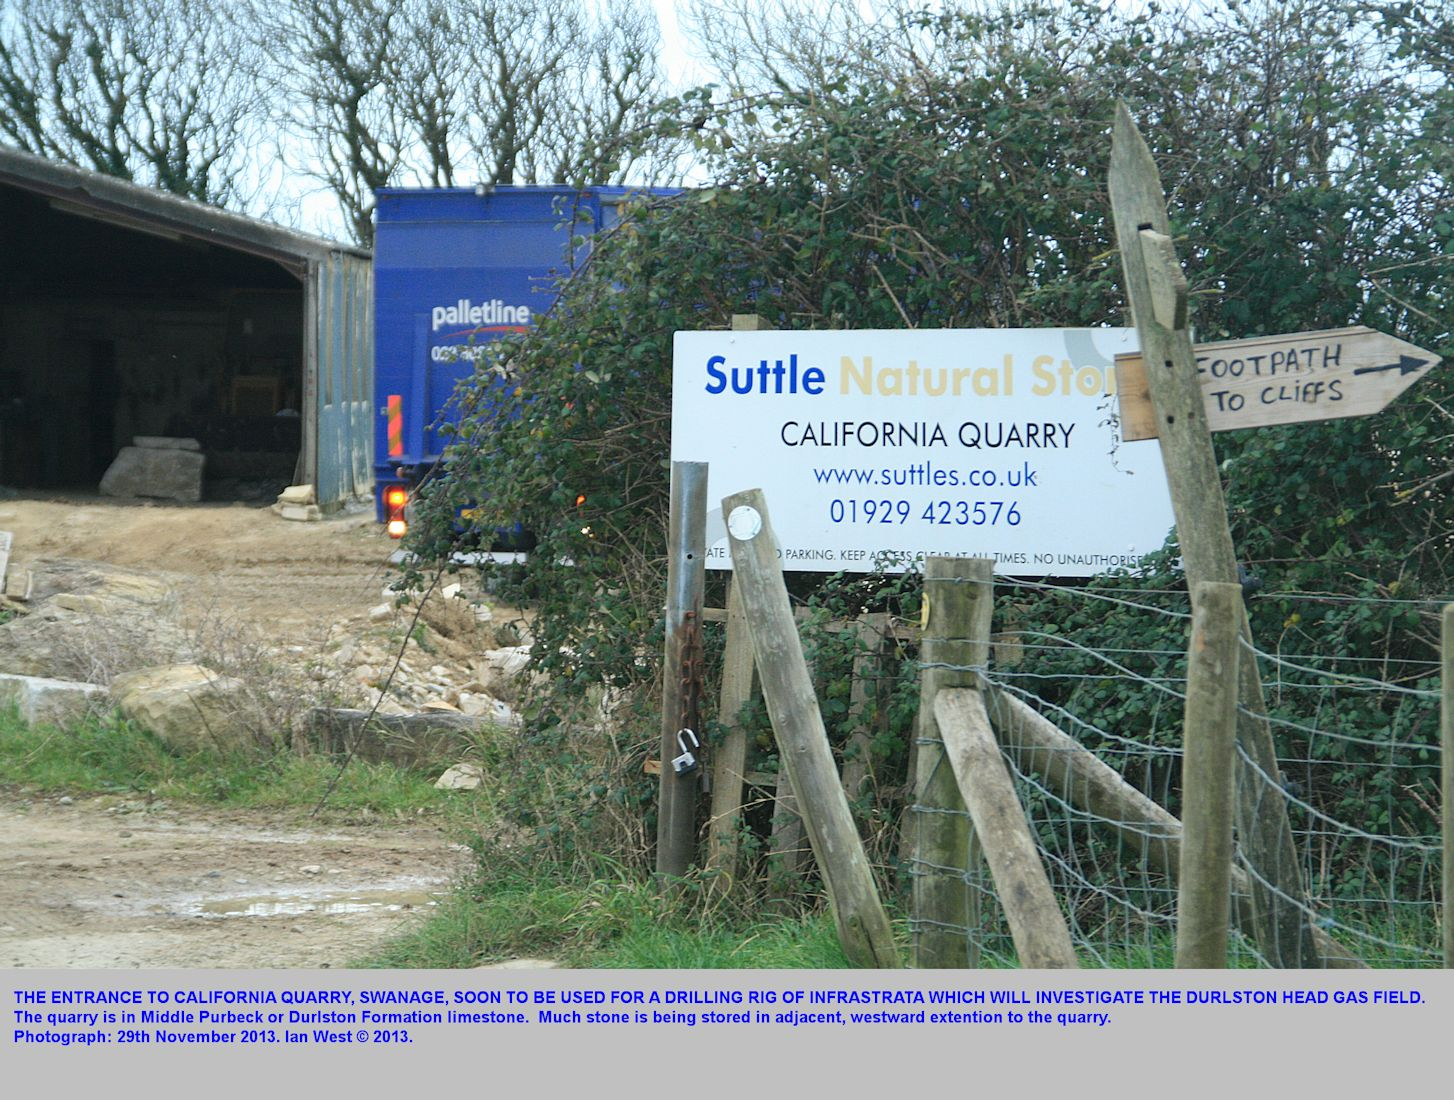 The entrance to California Quarry, California Farm, Swanage, Dorset, a locality that will probably become the wellsite for exploration of the Durlston Head gas field by Infrastrata